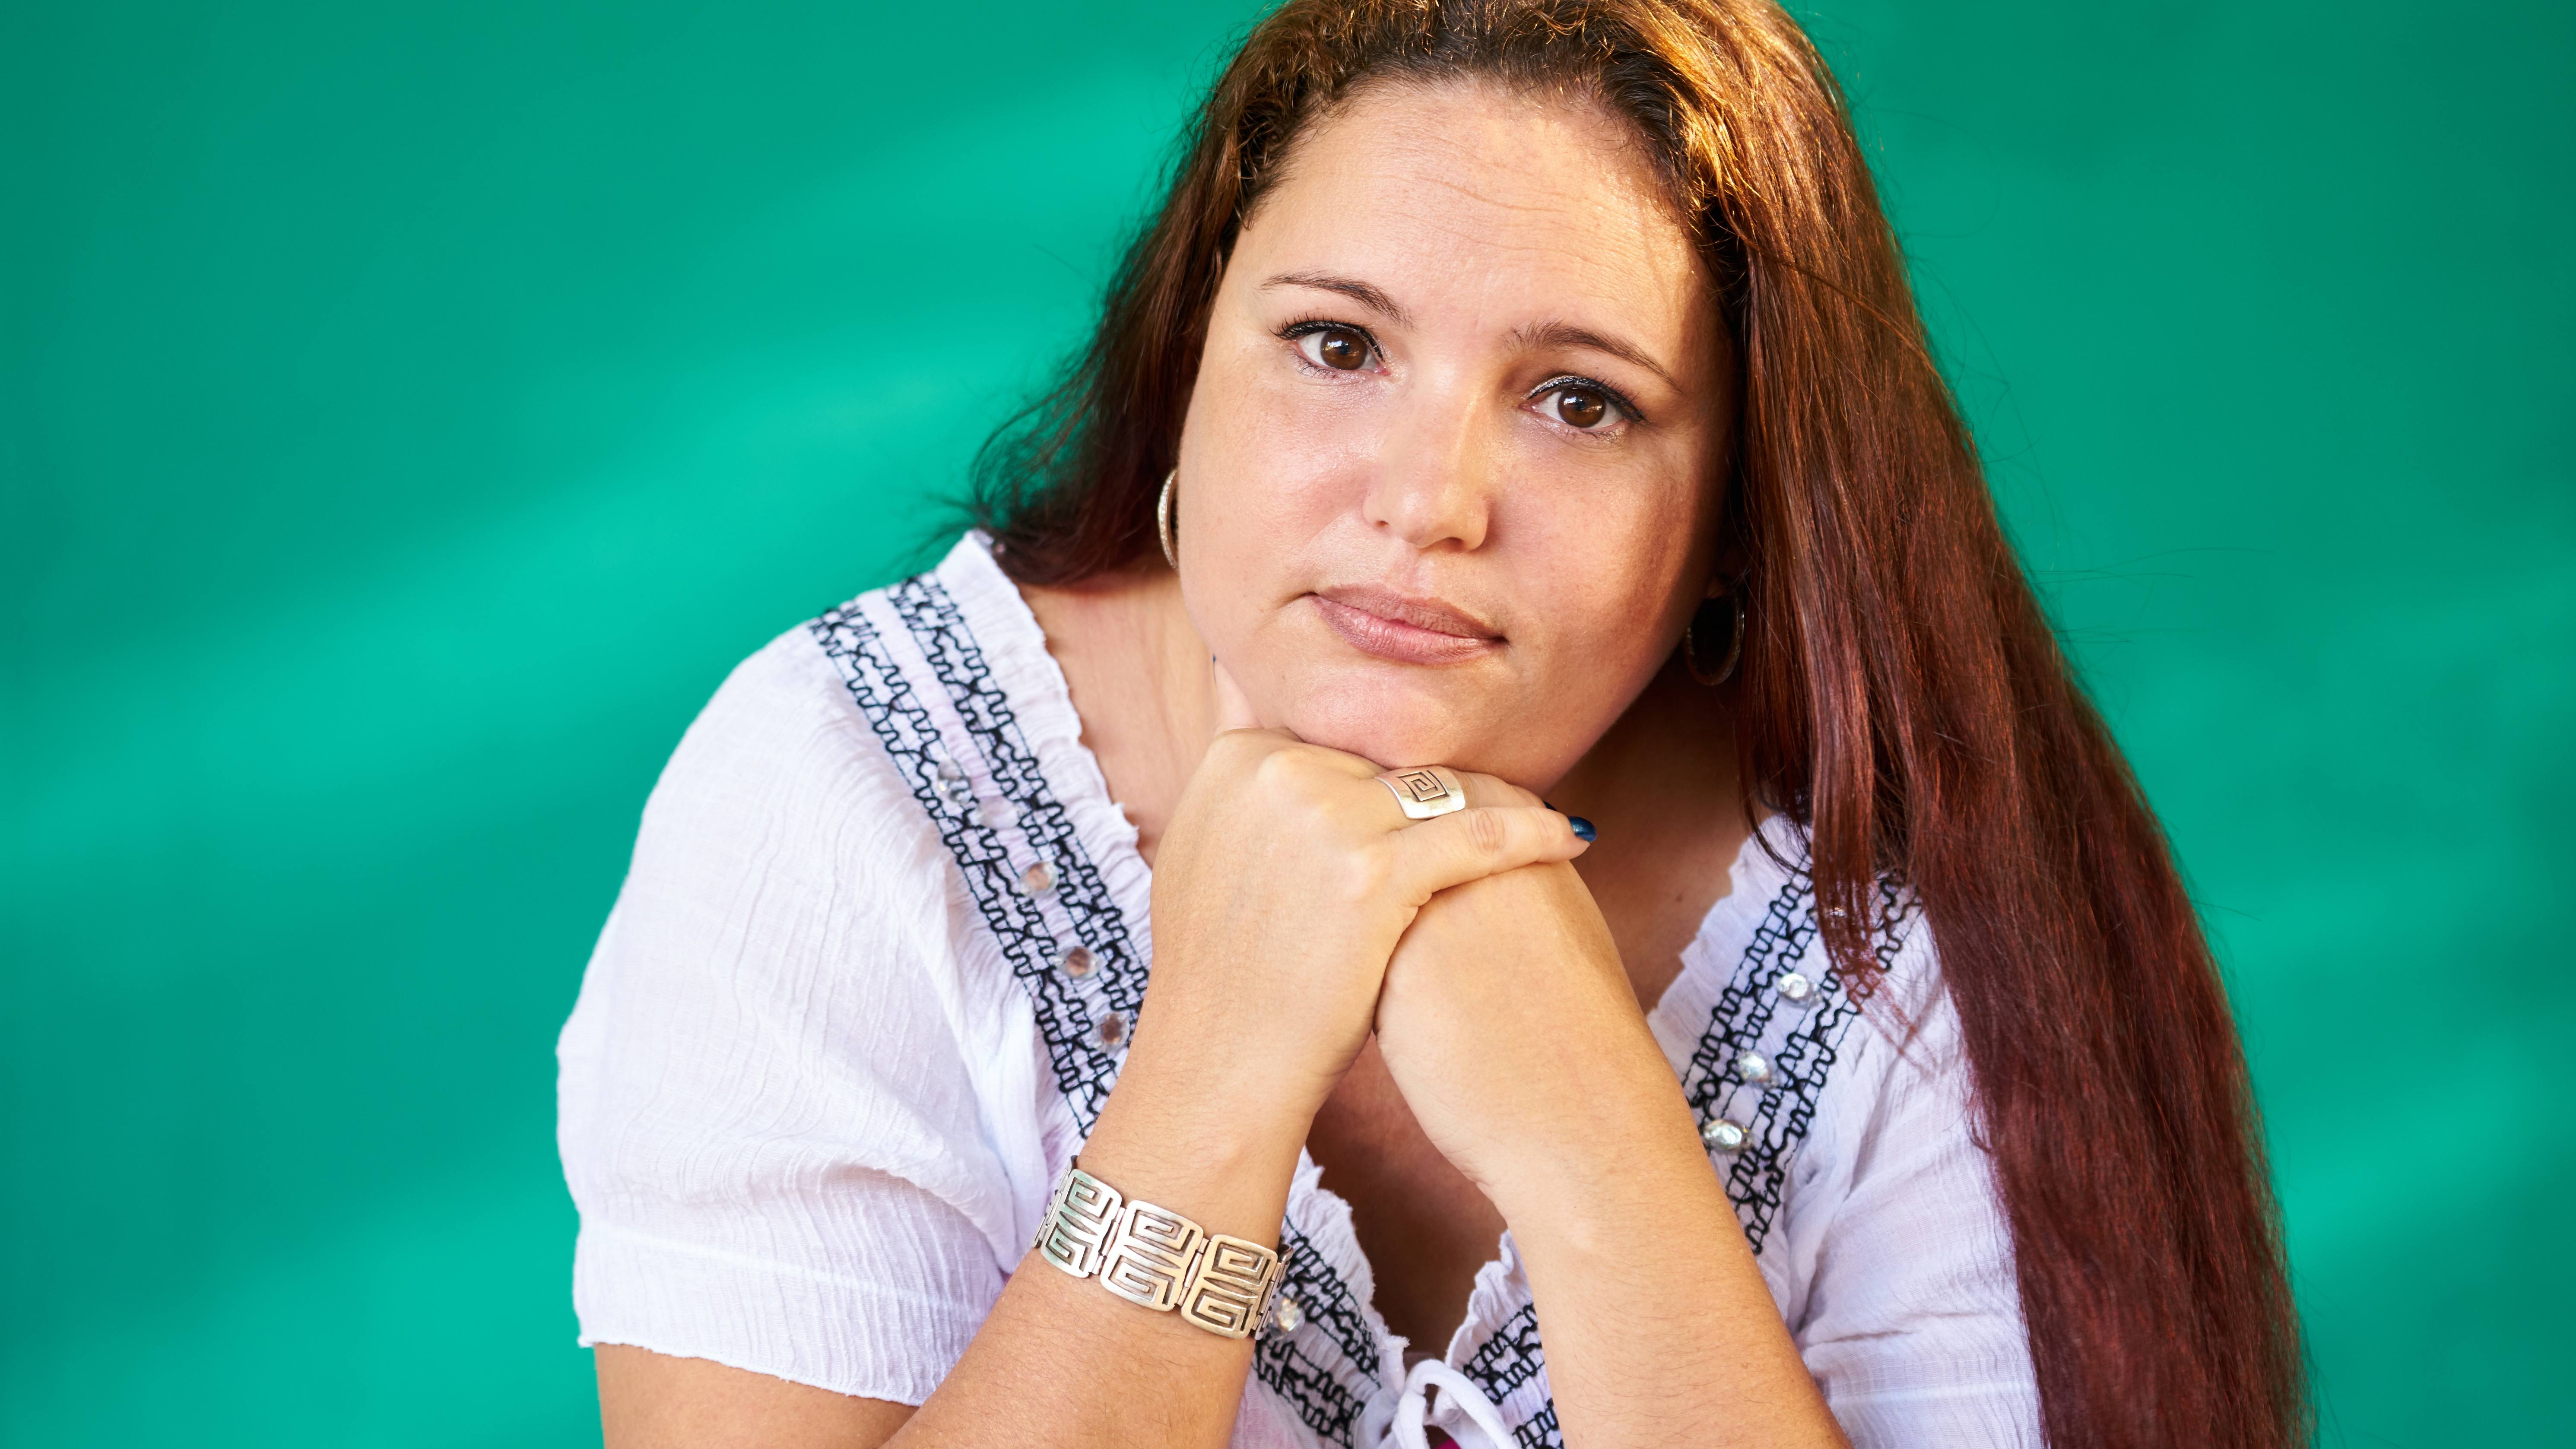 Portrait of sad overweight young woman looking at camera.